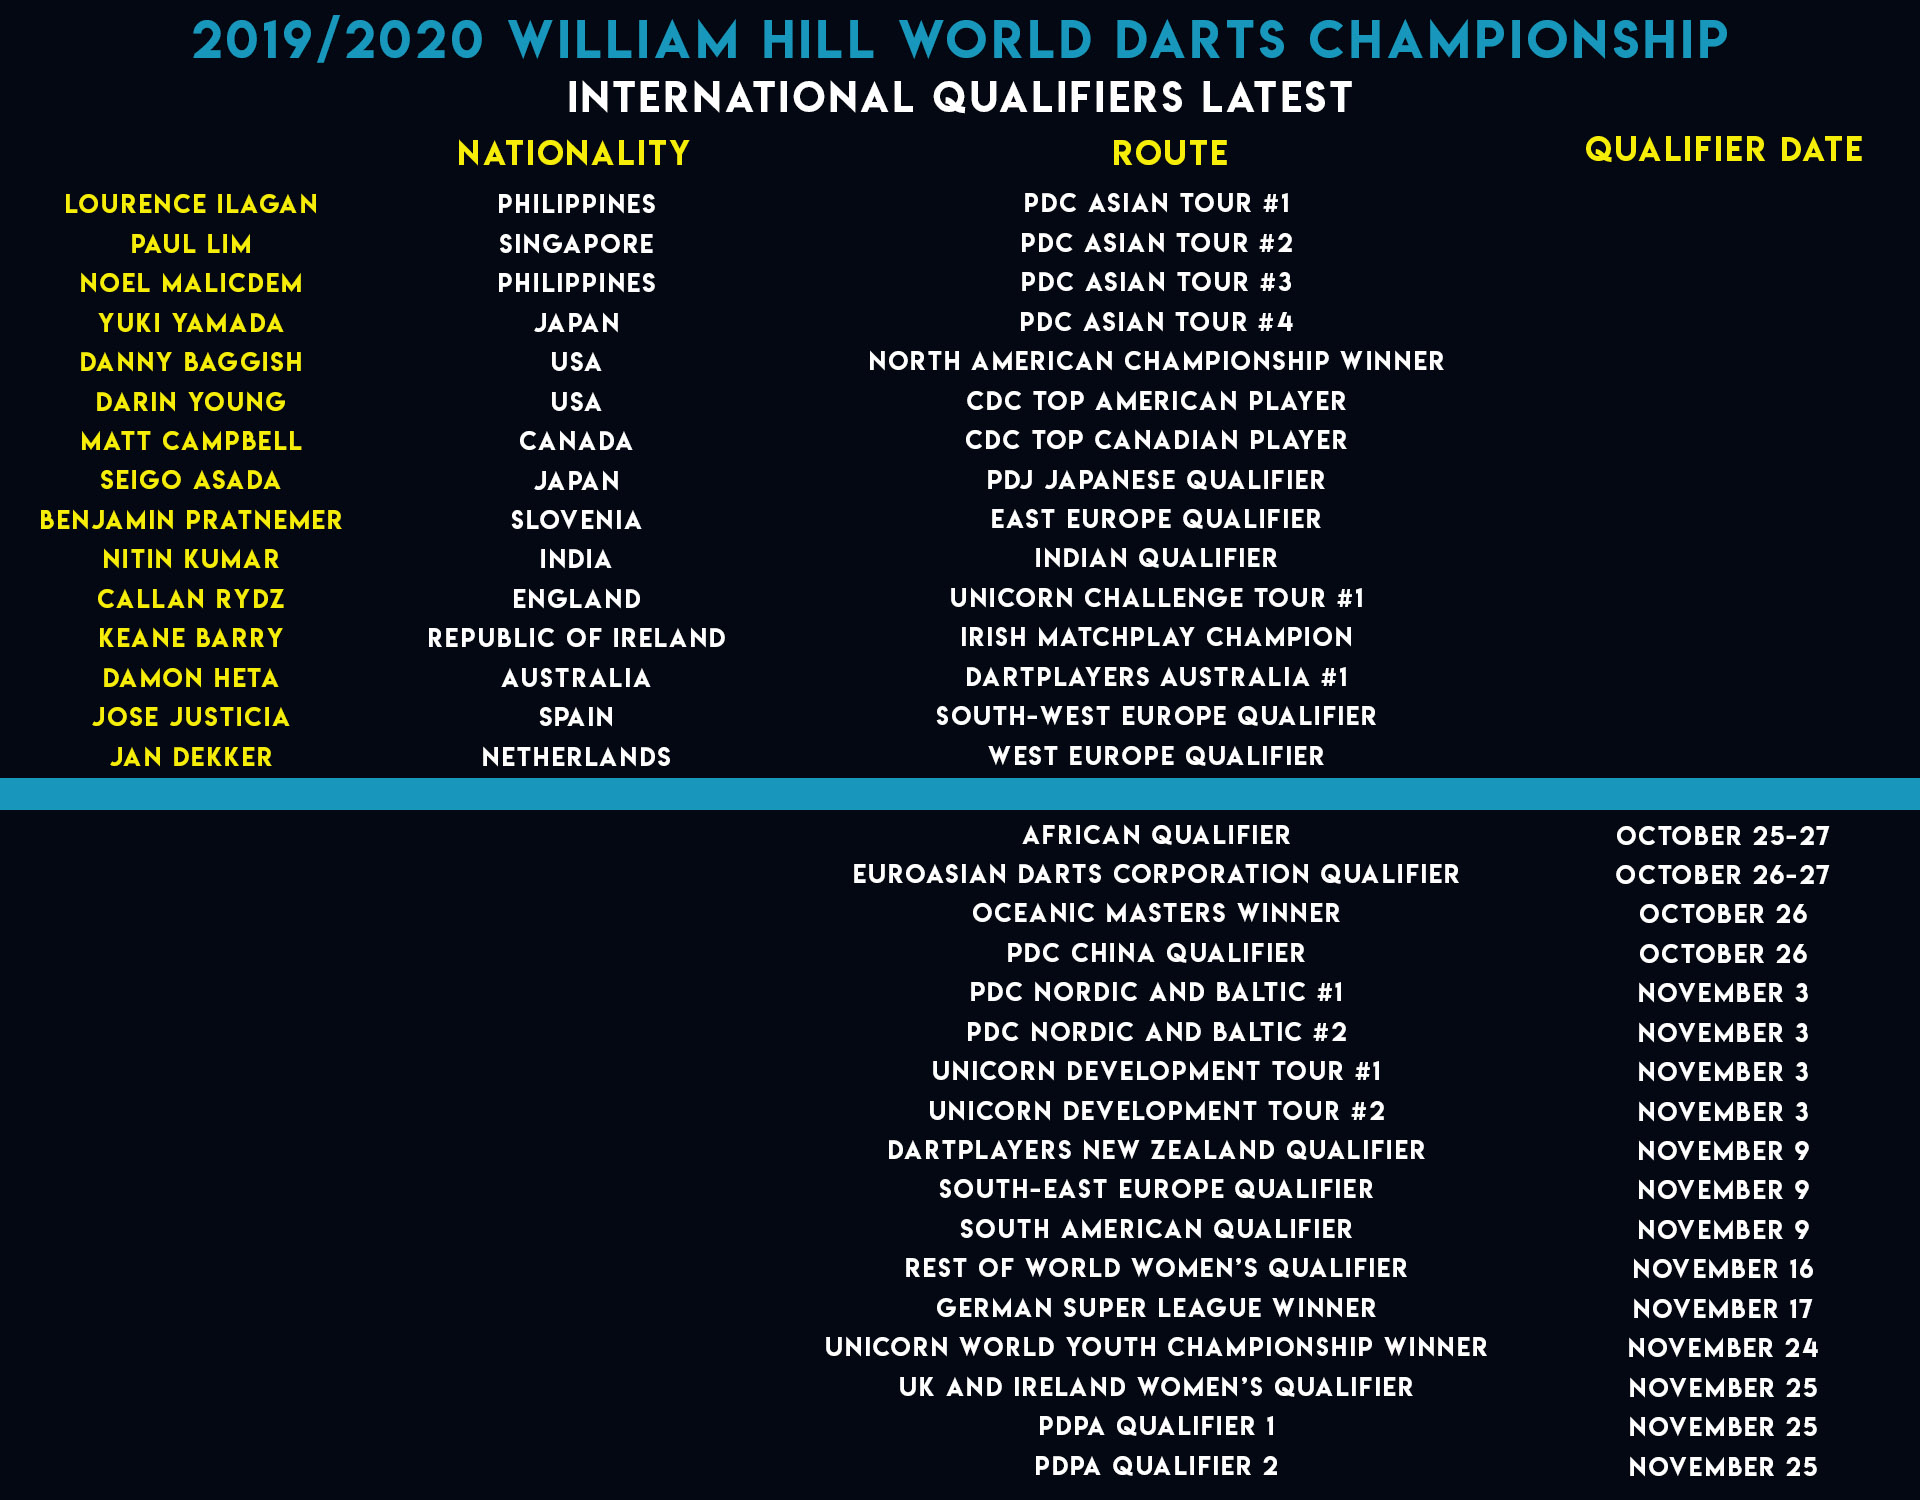 World Championship International Qualifiers (PDC)